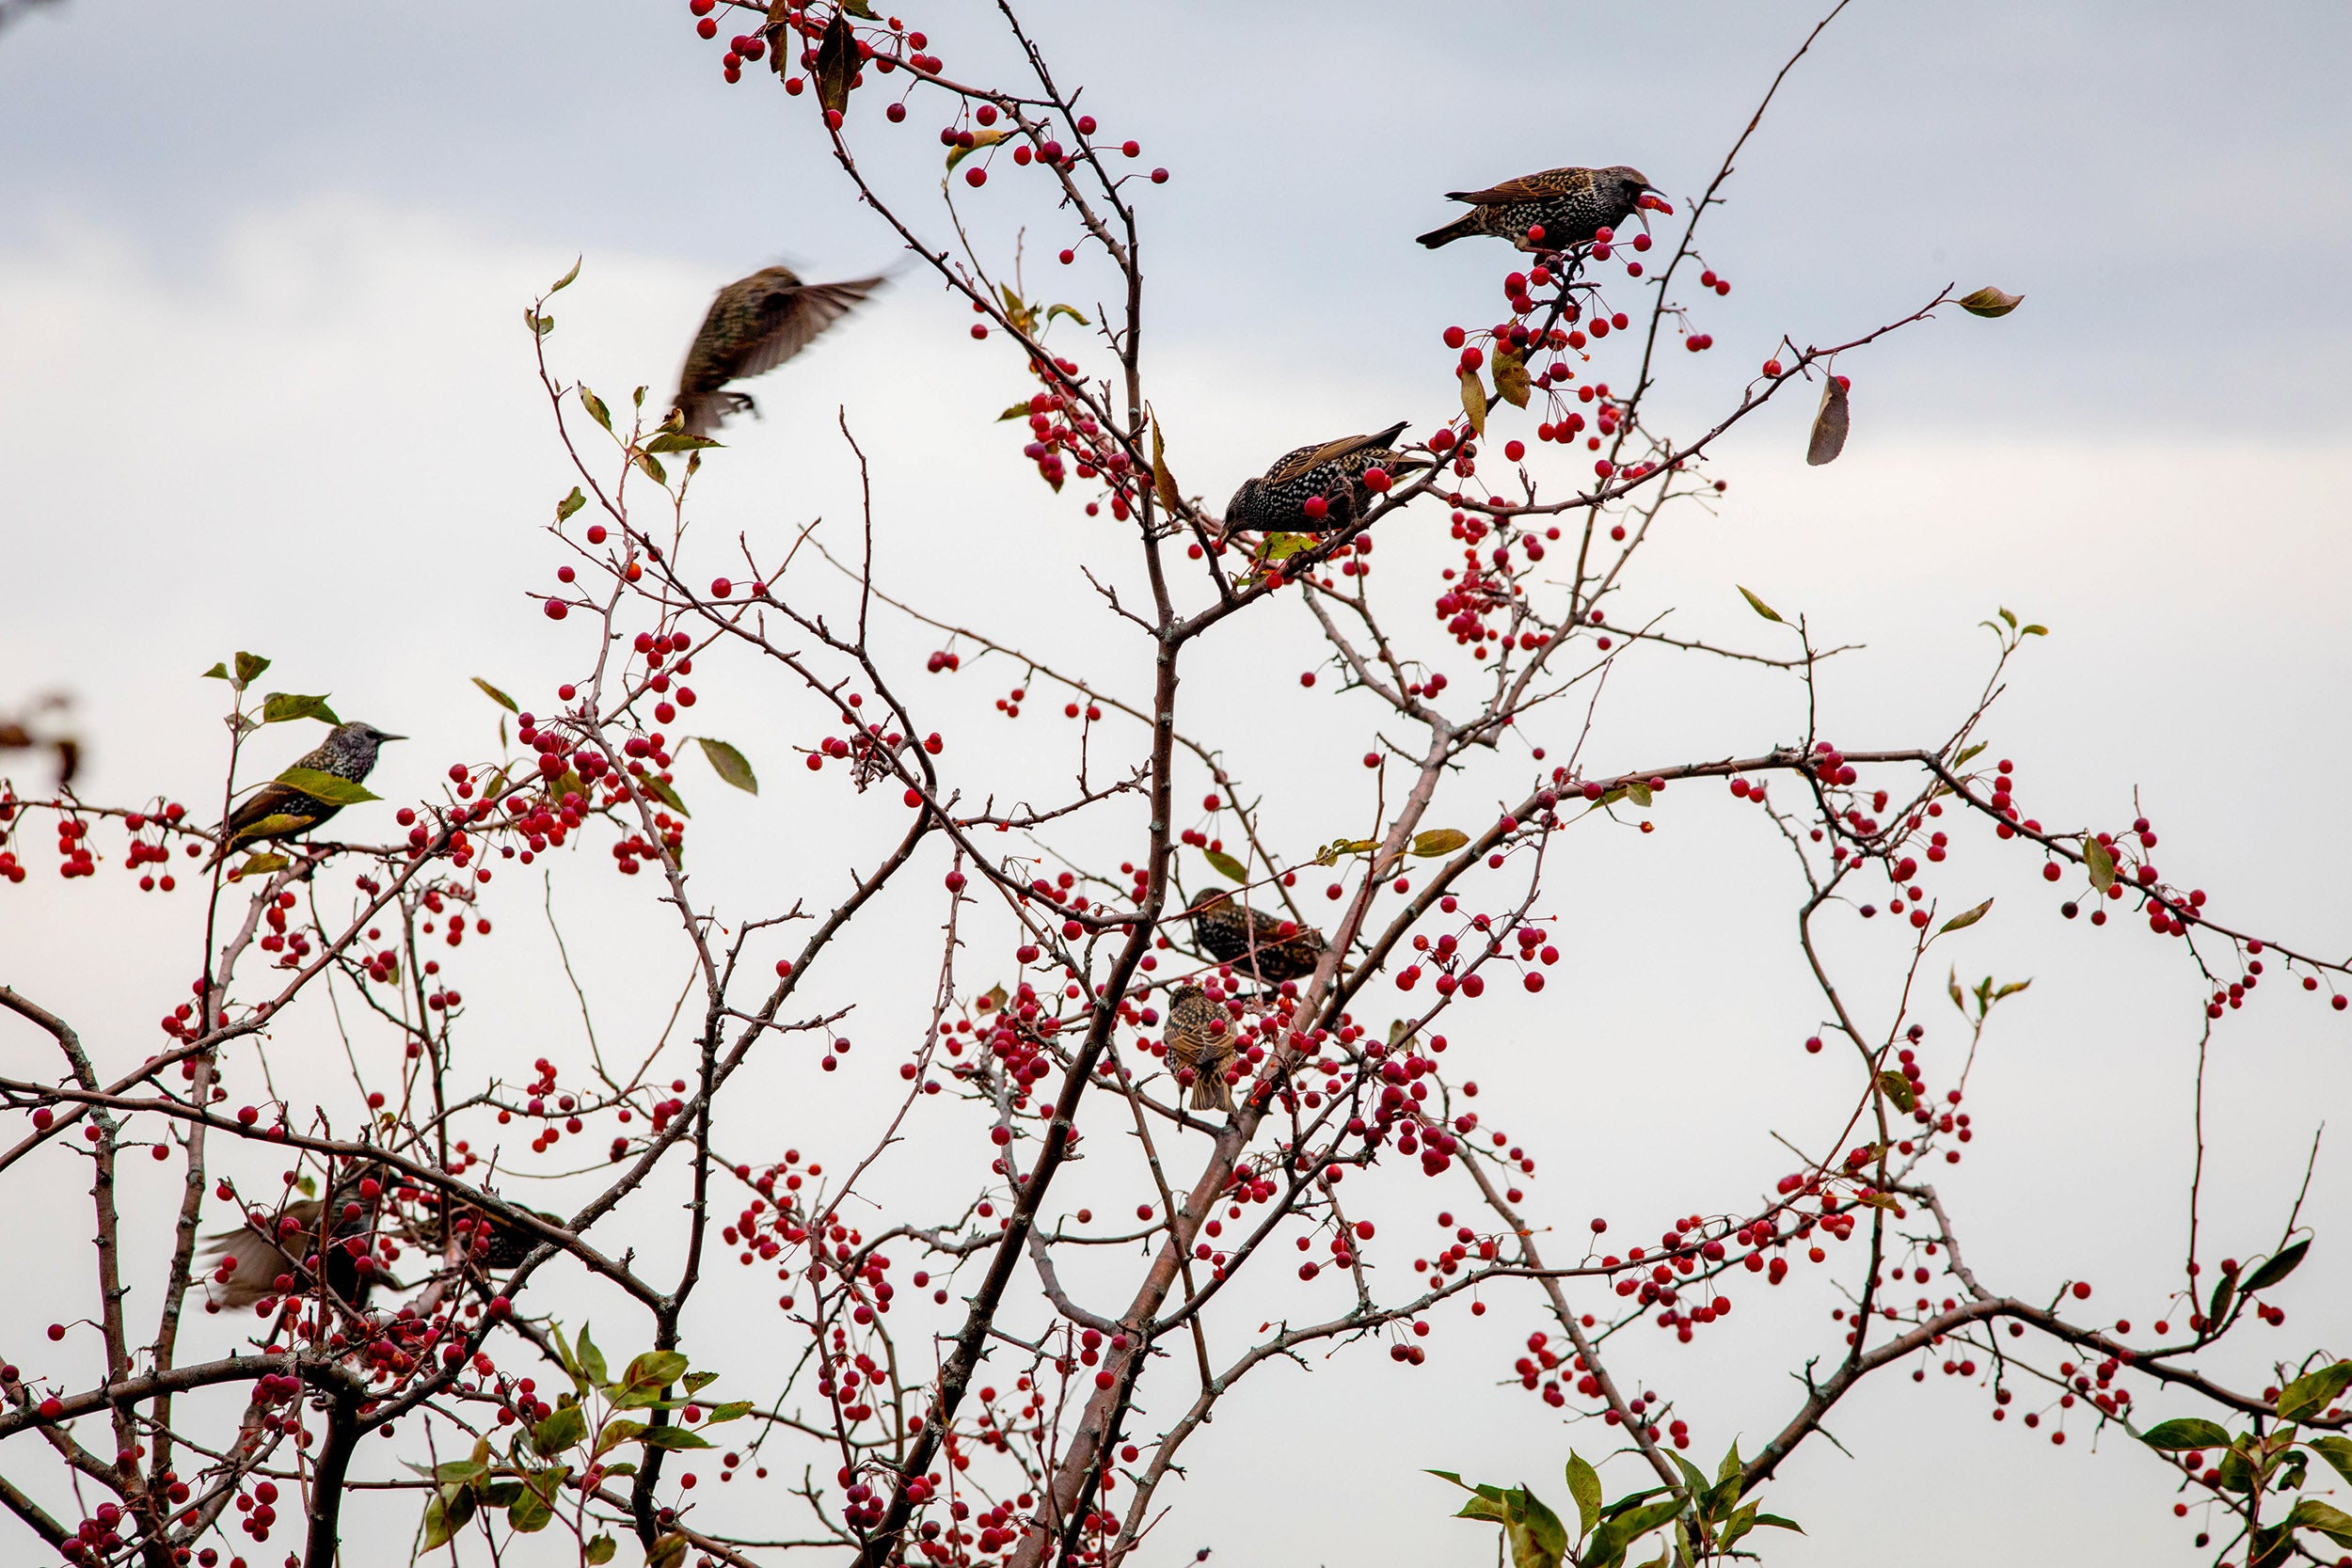 Birds compete for fruits in a tree on Peters Hill.